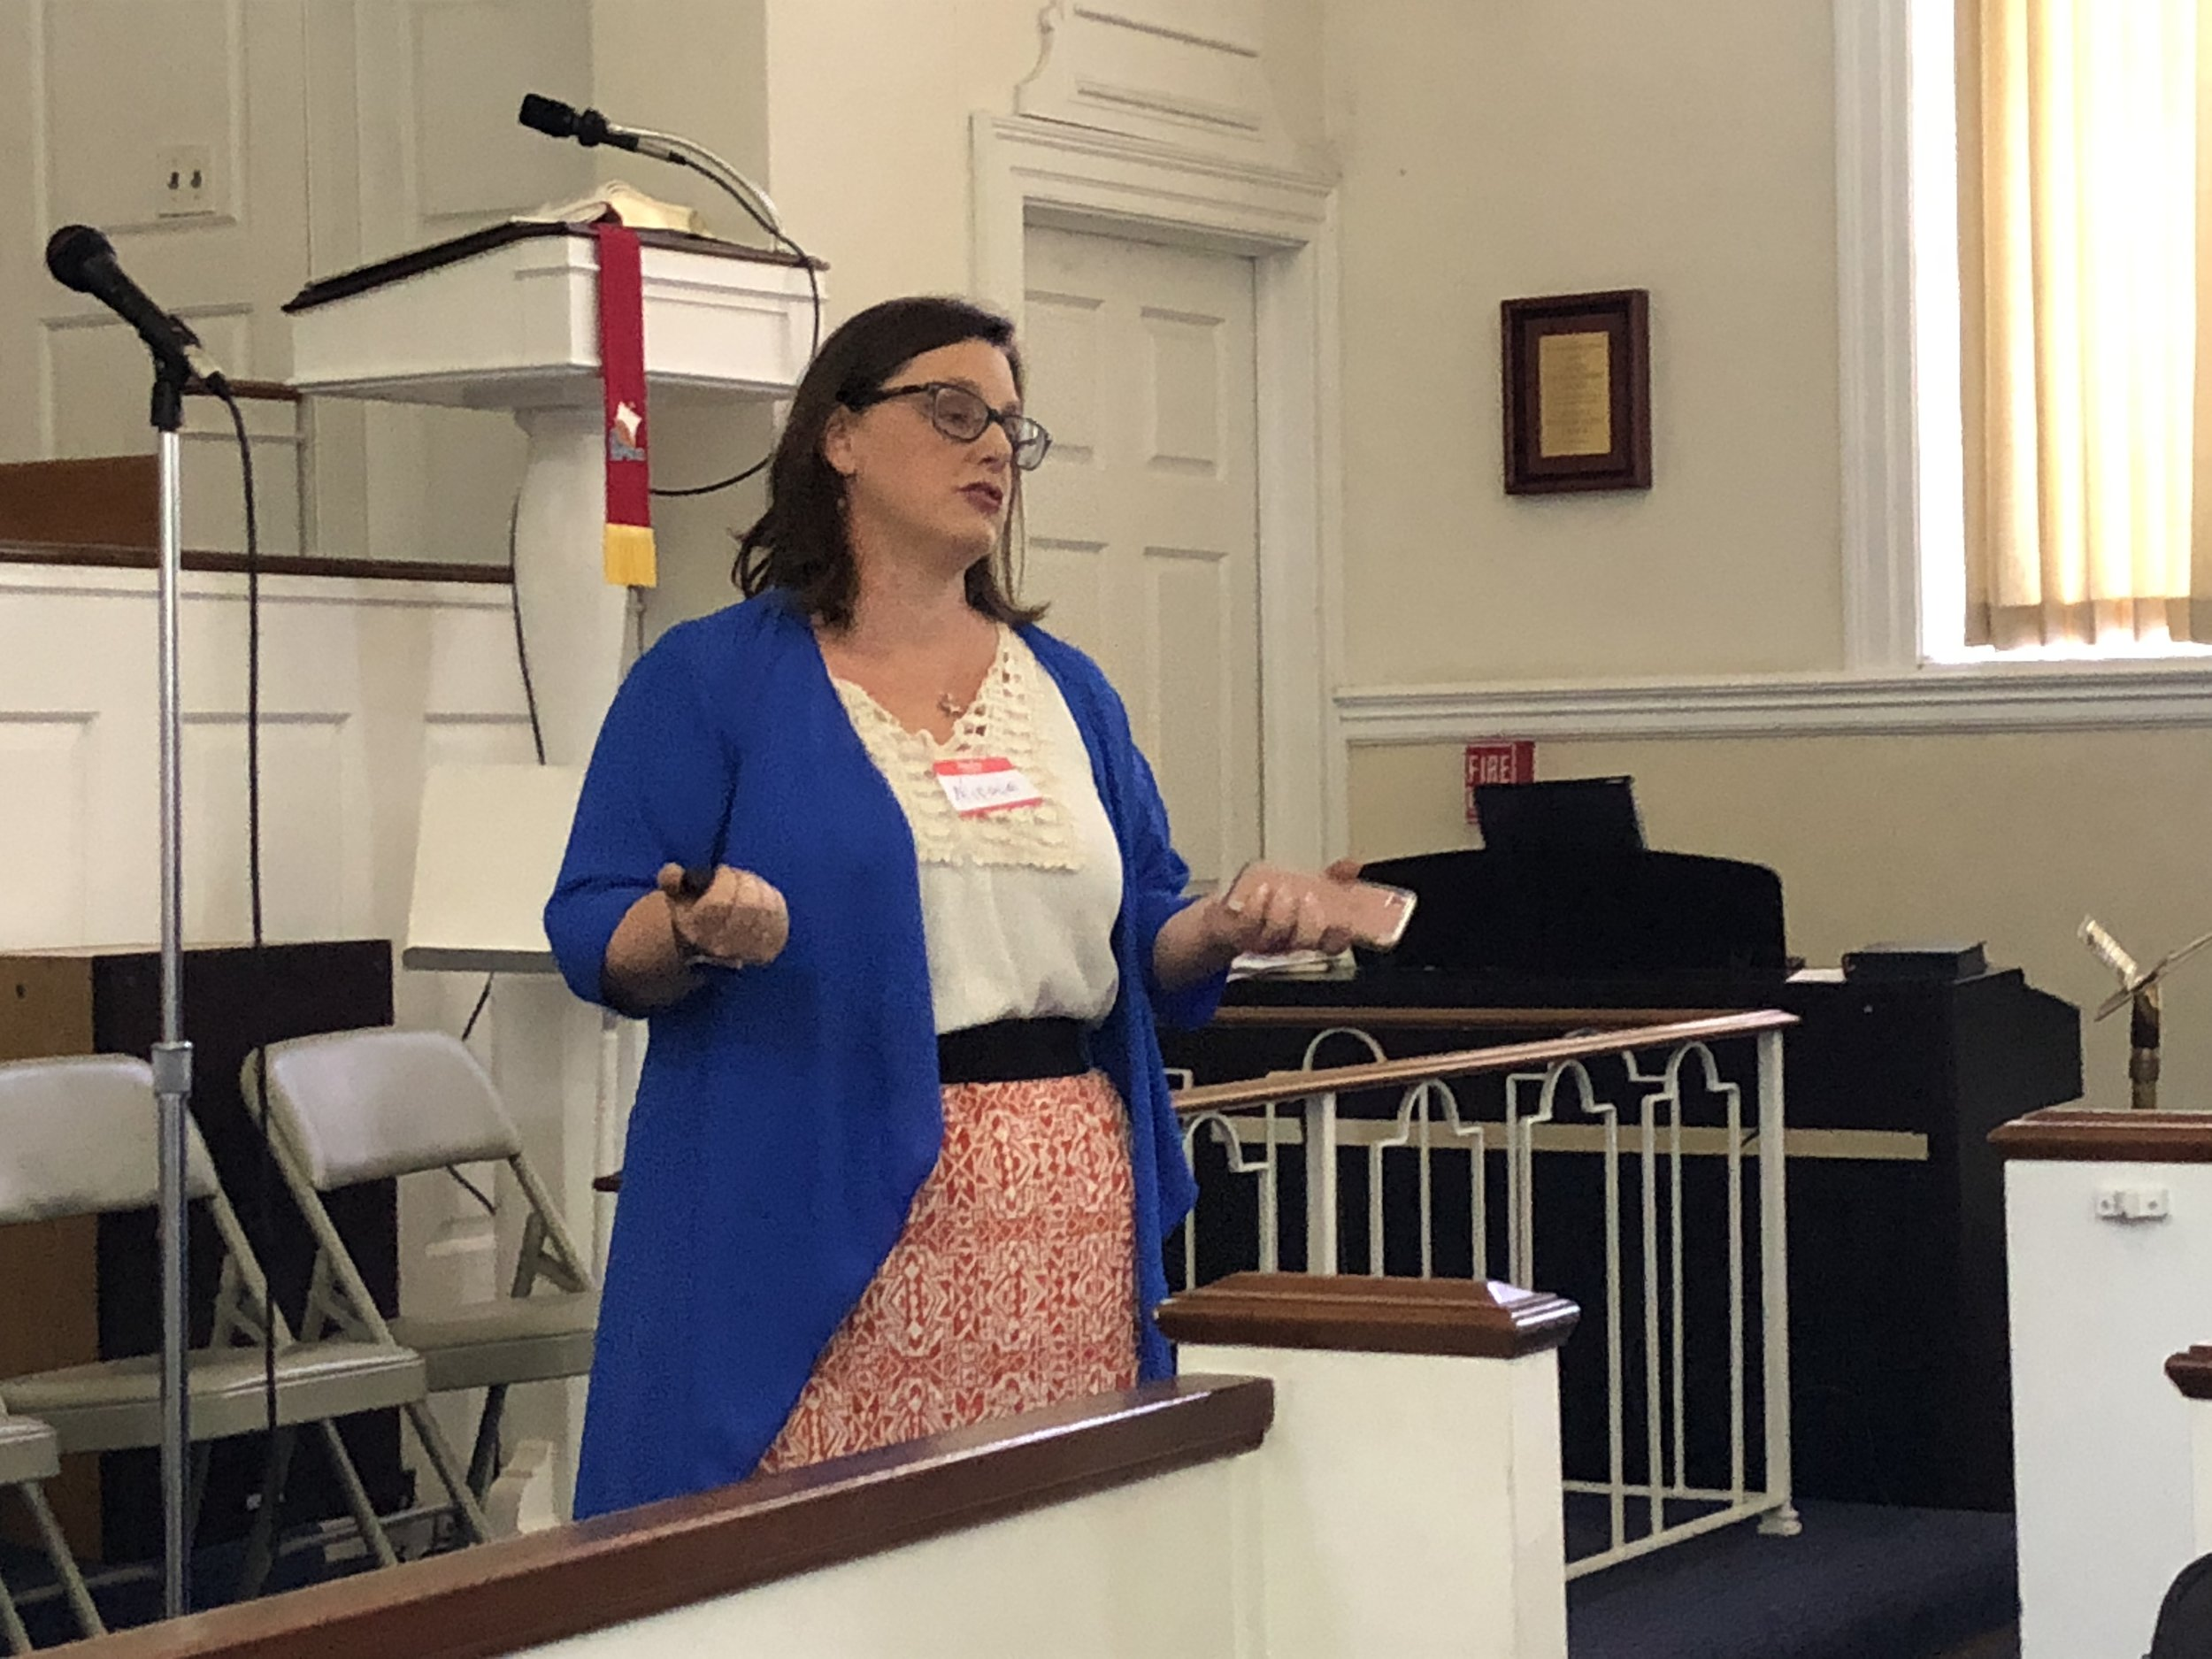 Nicole Johns from POWER speaking at the May 20th H-CAN meeting.